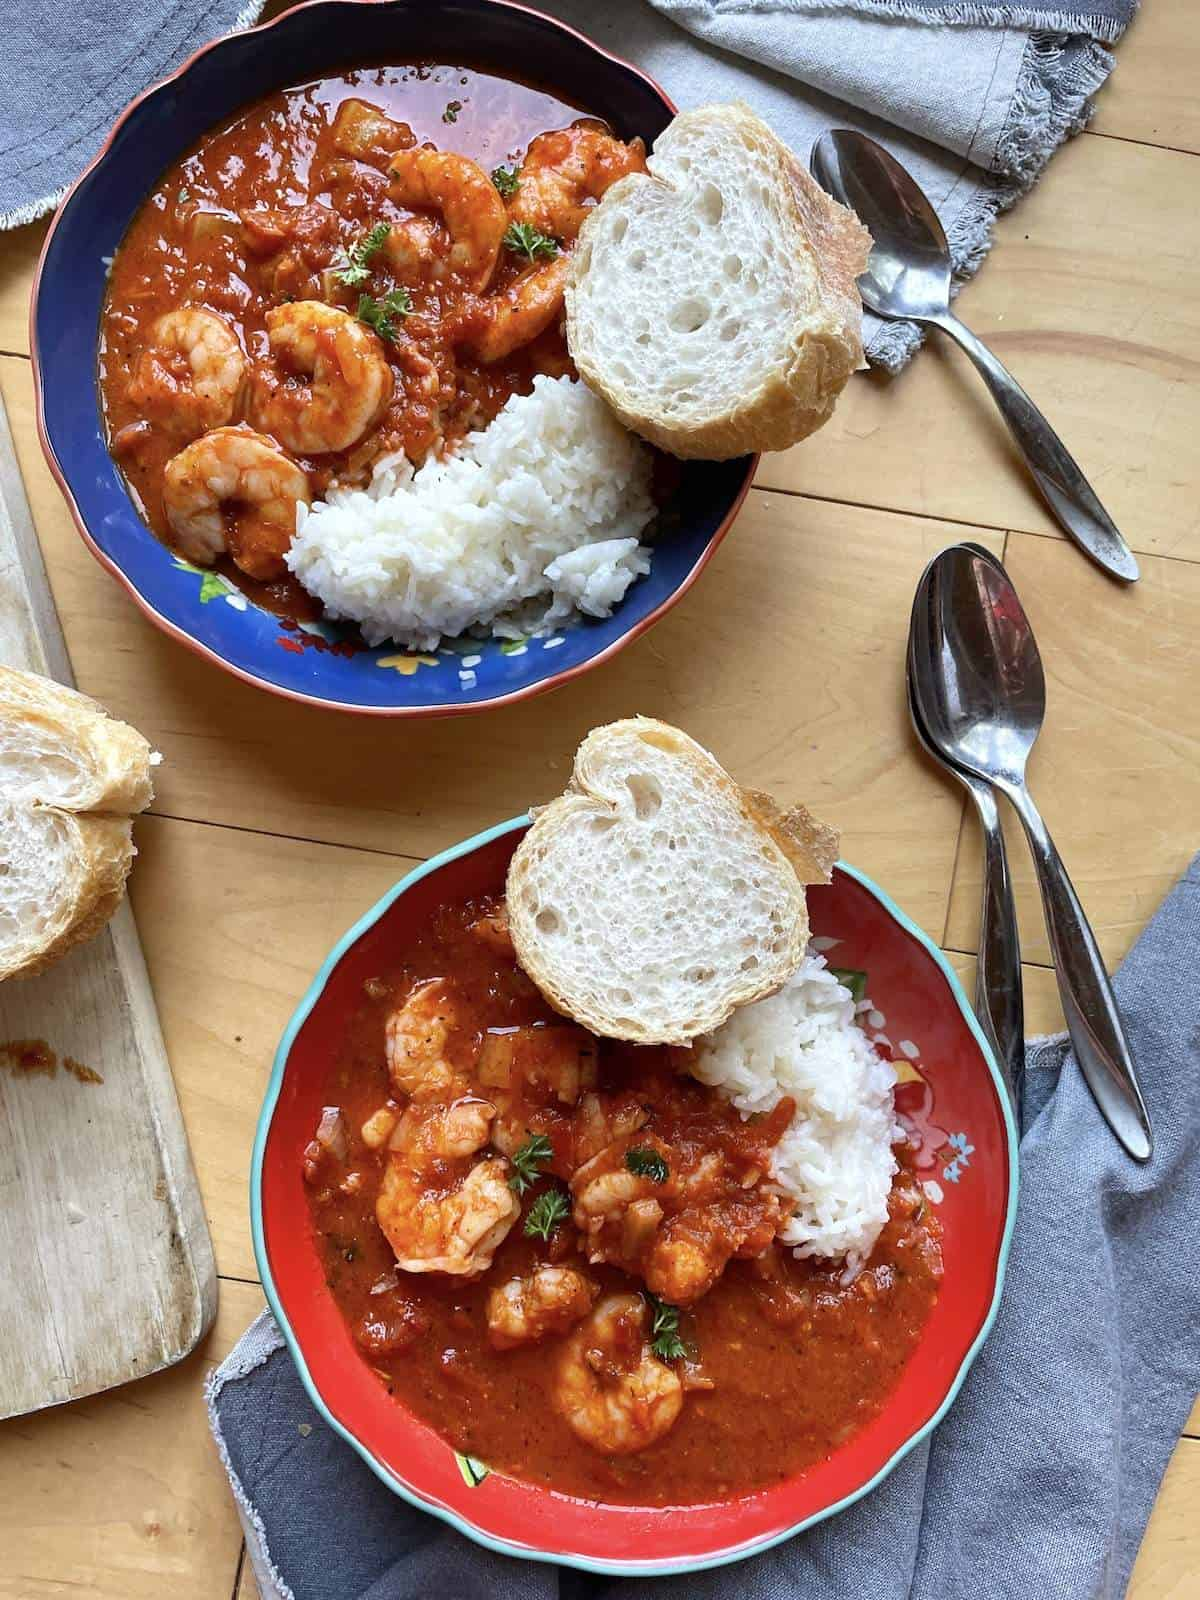 Two bowls of shrimp creole, one red and one blue, with french bread and rice with three spoons.